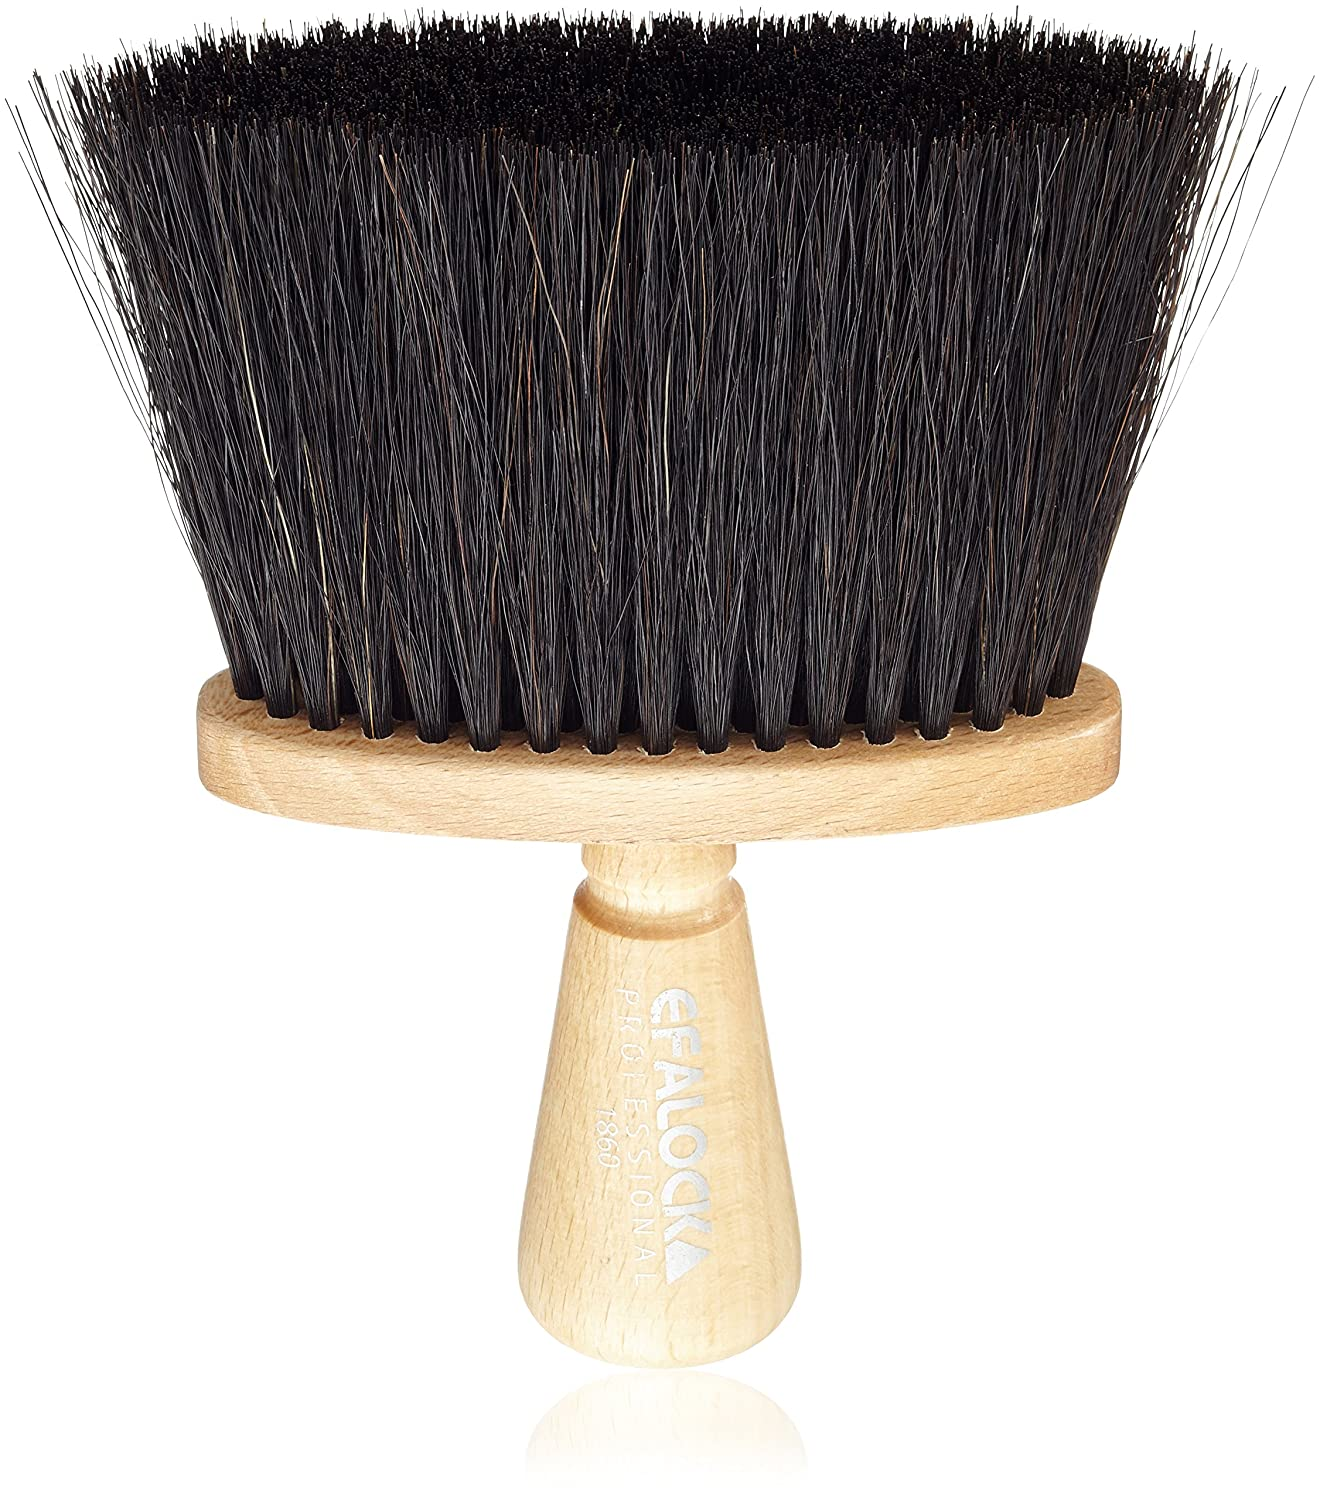 Efalock Neck Brush Natural Bristles Pack of 1 (1 Pack) 96325296